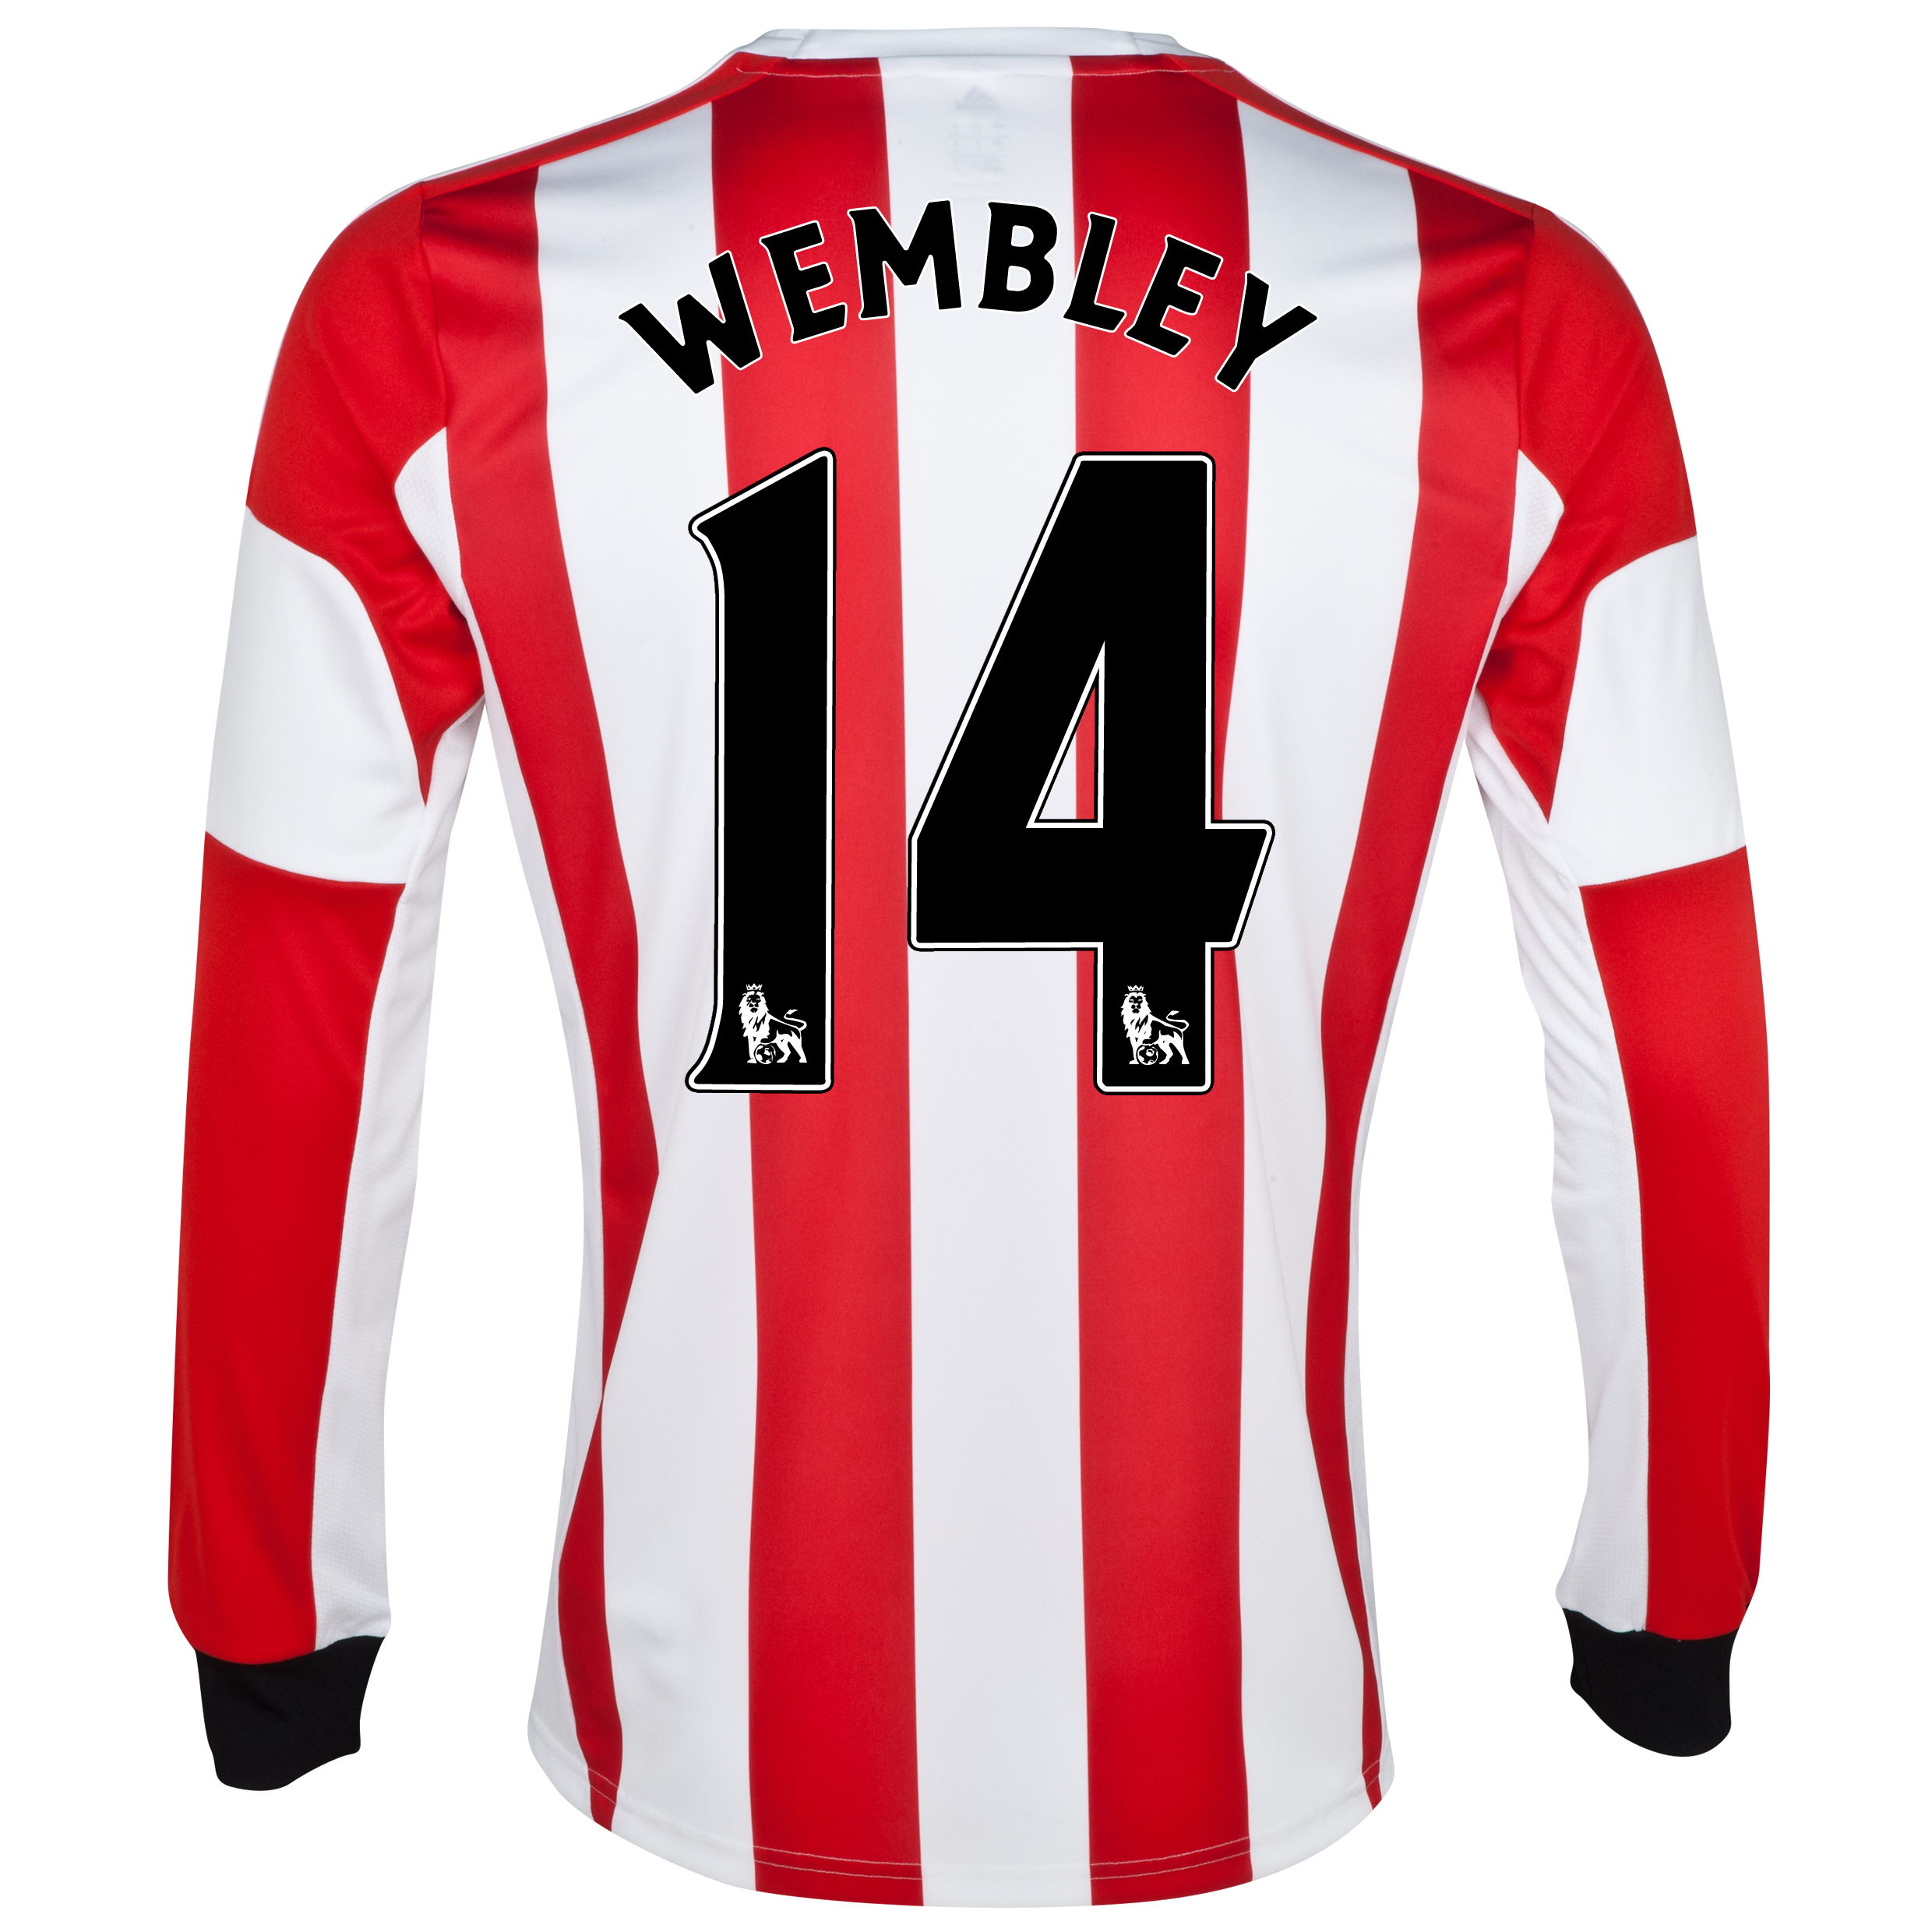 Sunderland Home Shirt 2013/14 - Long Sleeved - Junior with Wembley 14 printing